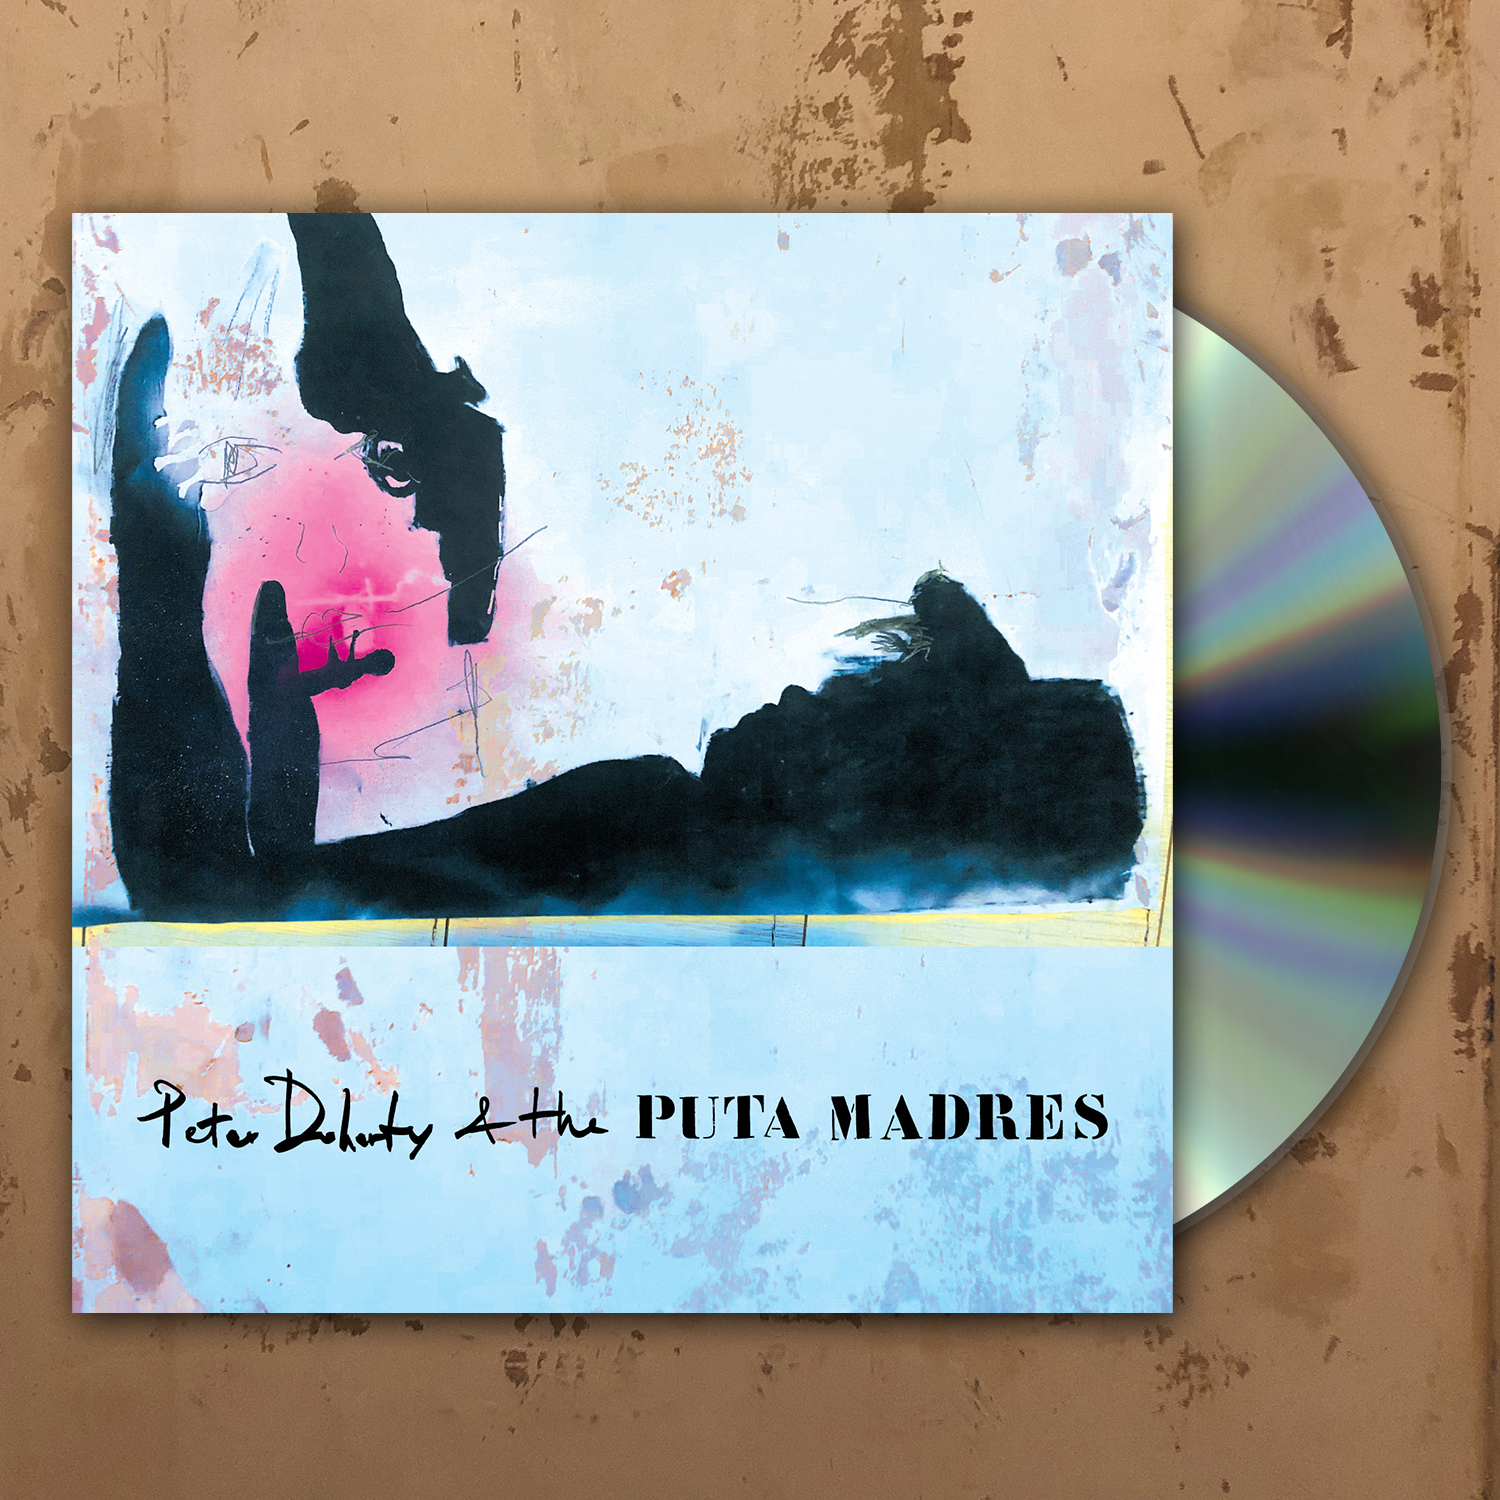 Peter Doherty and The Puta Madres -  CD - Pete Eudaimonism